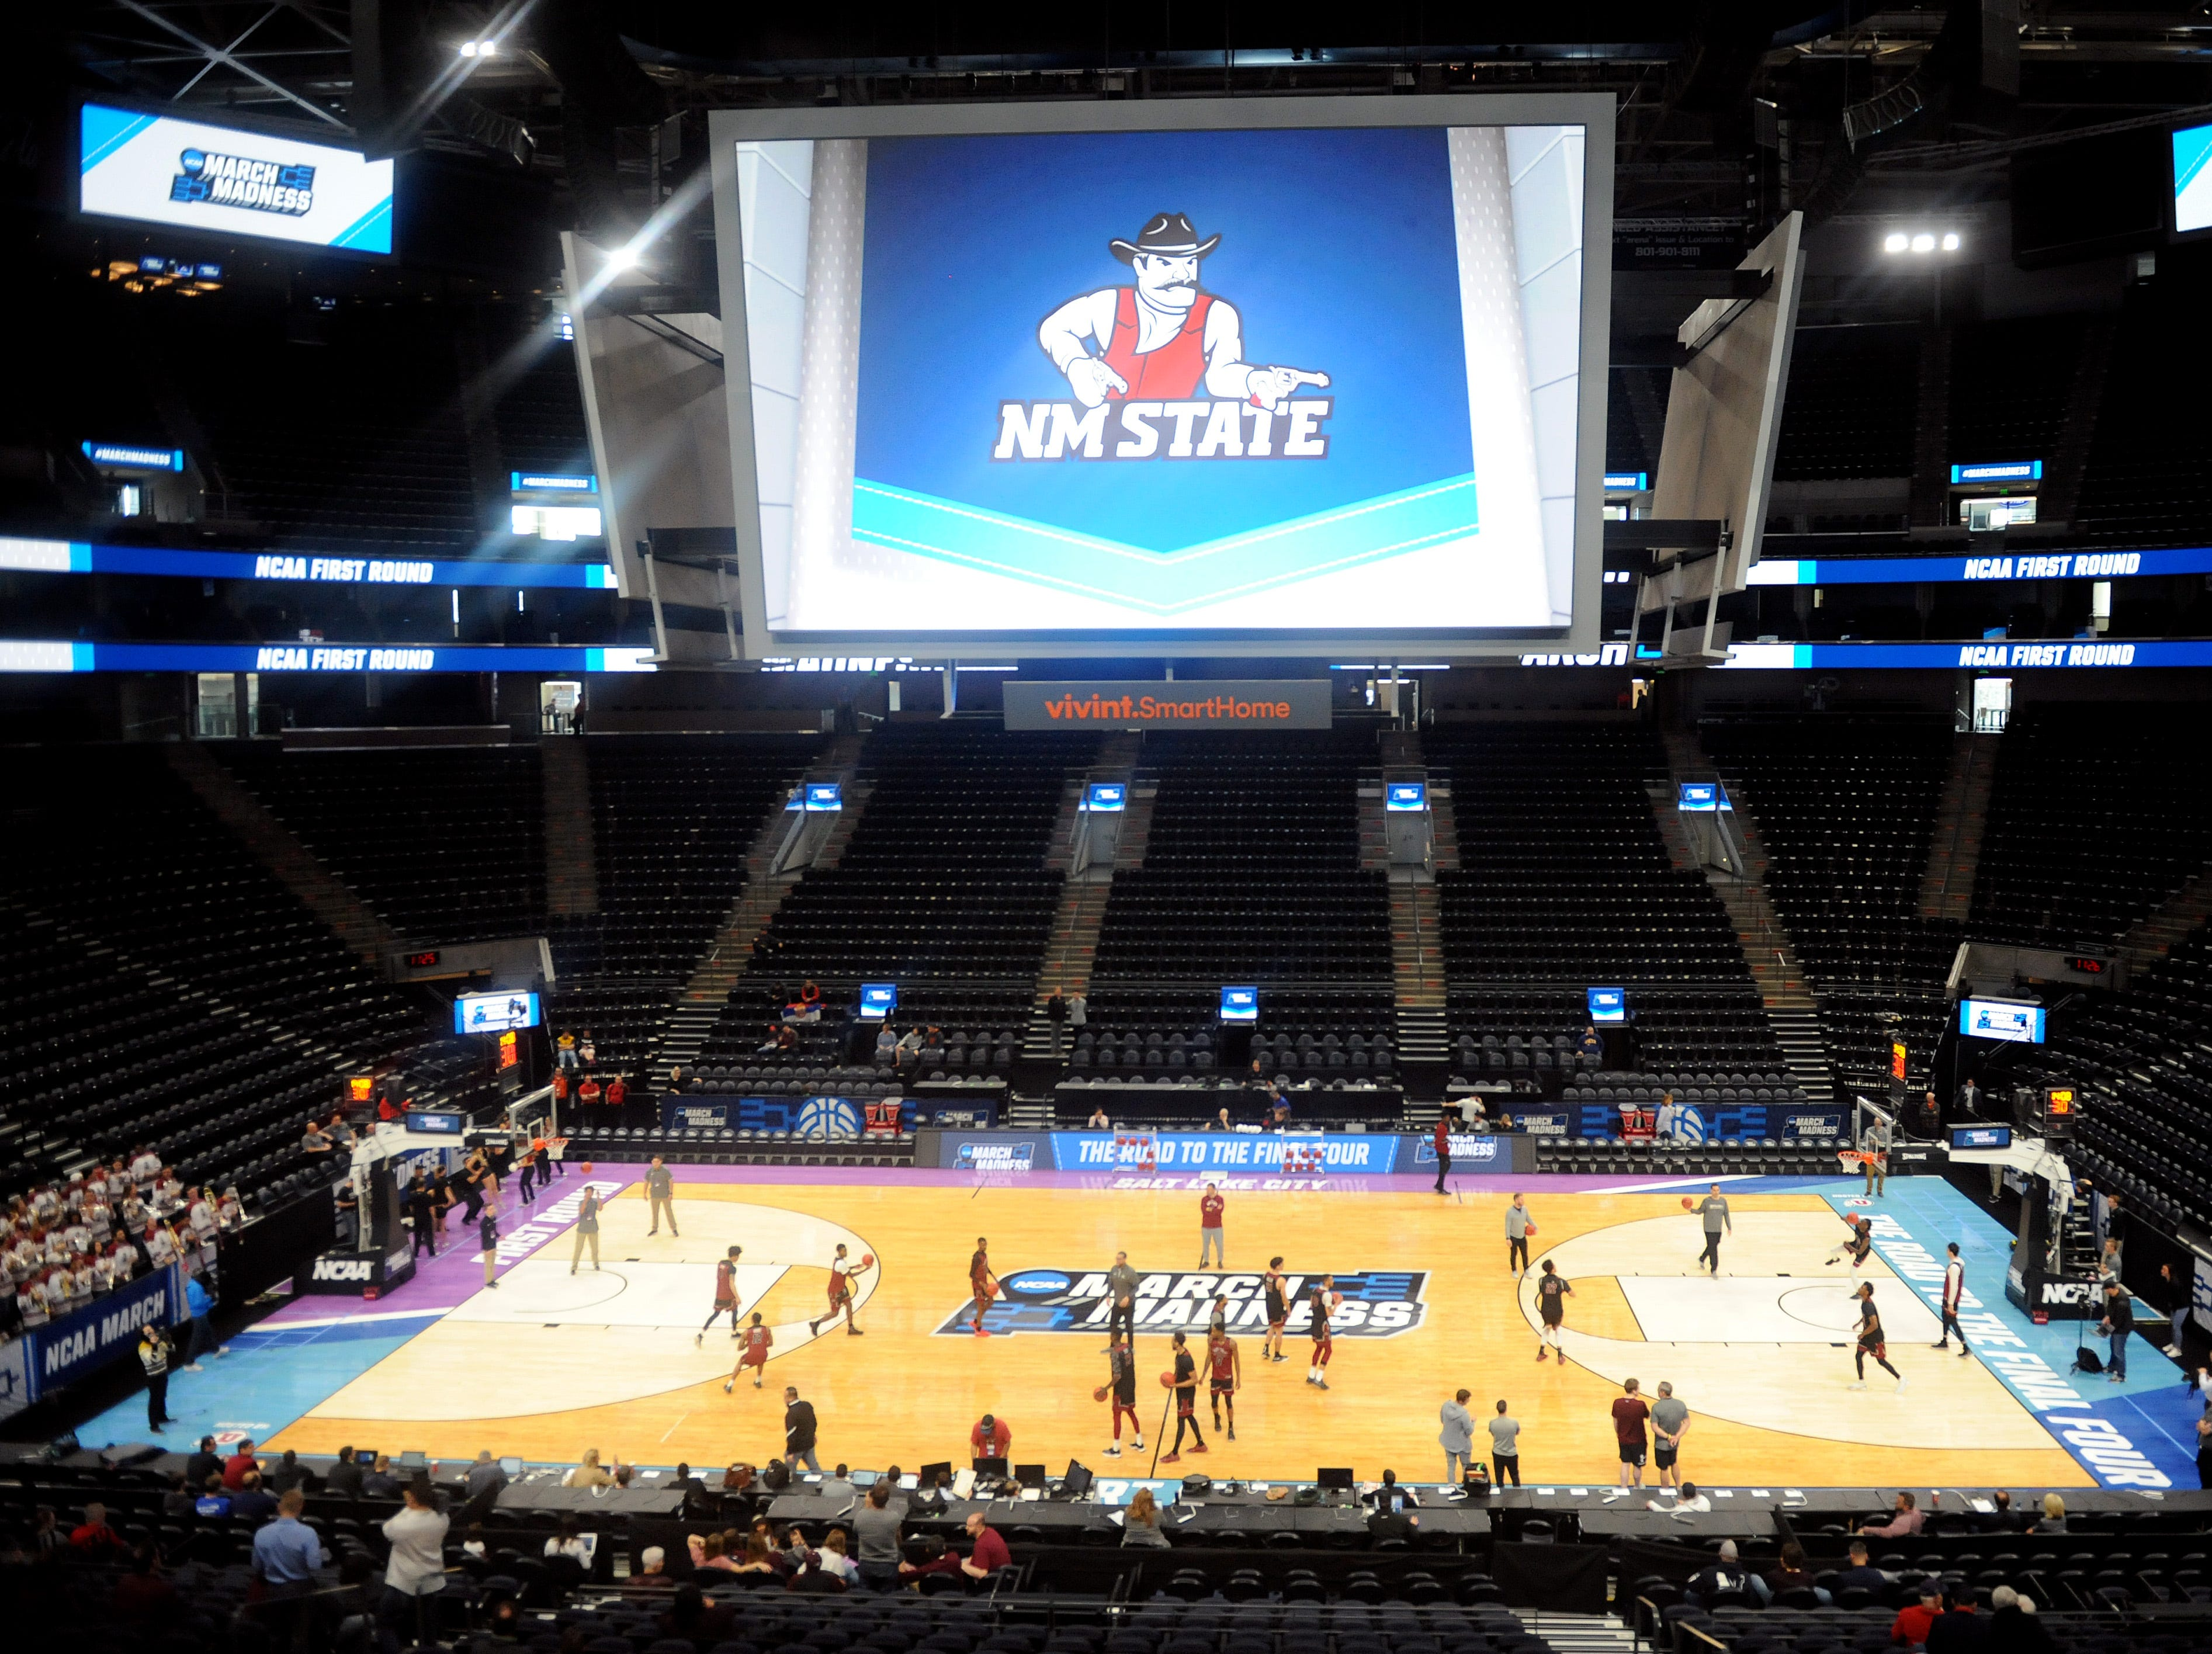 March 20, 2019; Salt Lake City, UT, USA; General view as New Mexico State Aggies practices before the first round of the 2019 NCAA Tournament at Vivint Smart Home Arena. Mandatory Credit: Gary A. Vasquez-USA TODAY Sports